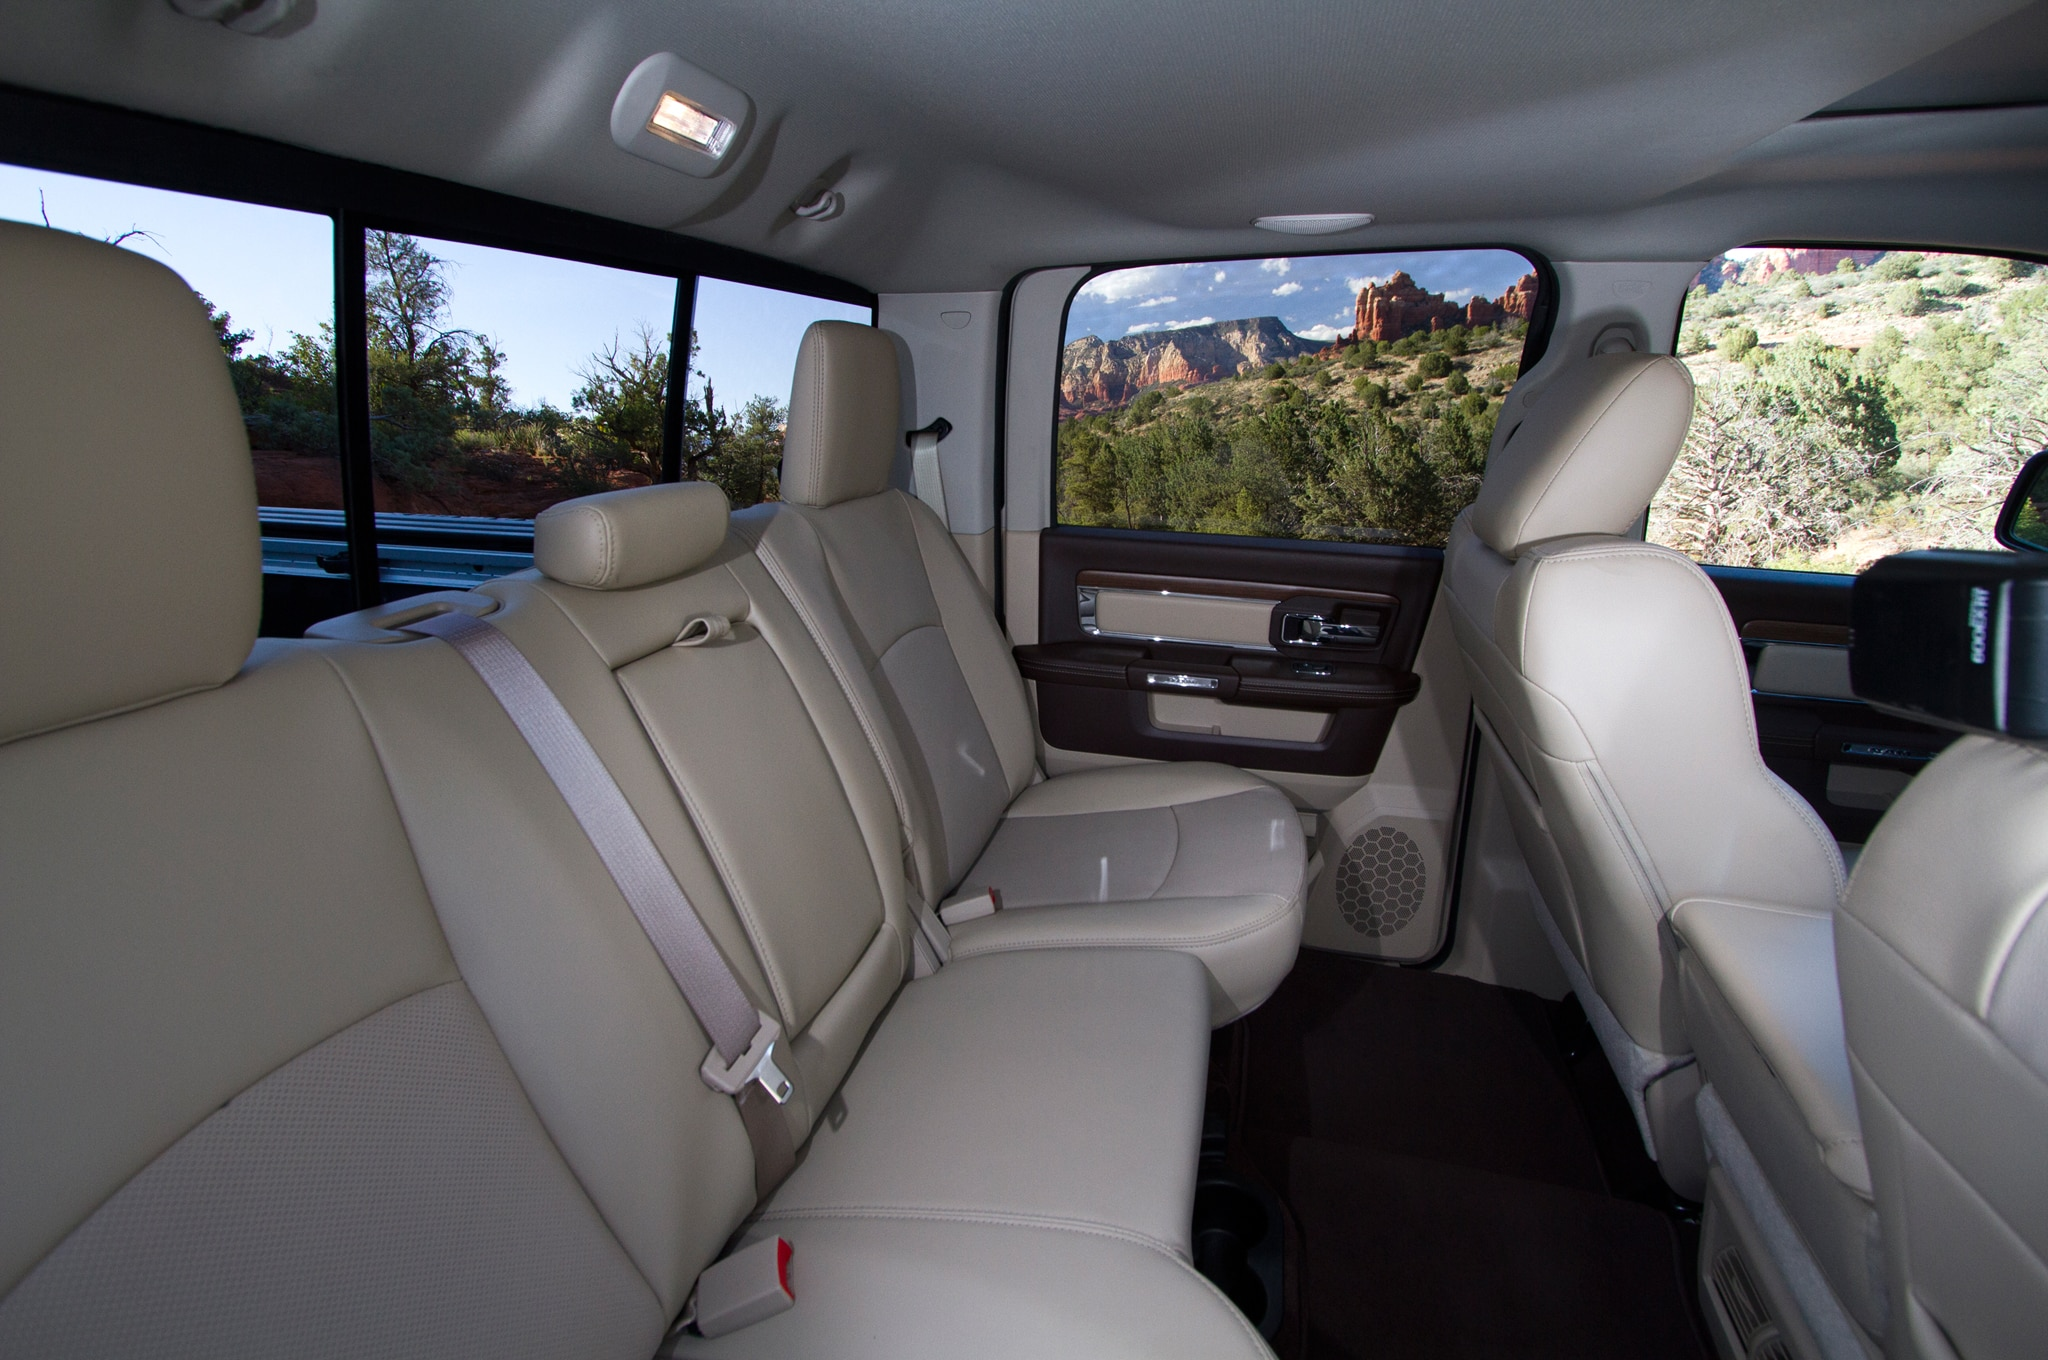 2014 Ram 2500 Power Wagon rear interior seats